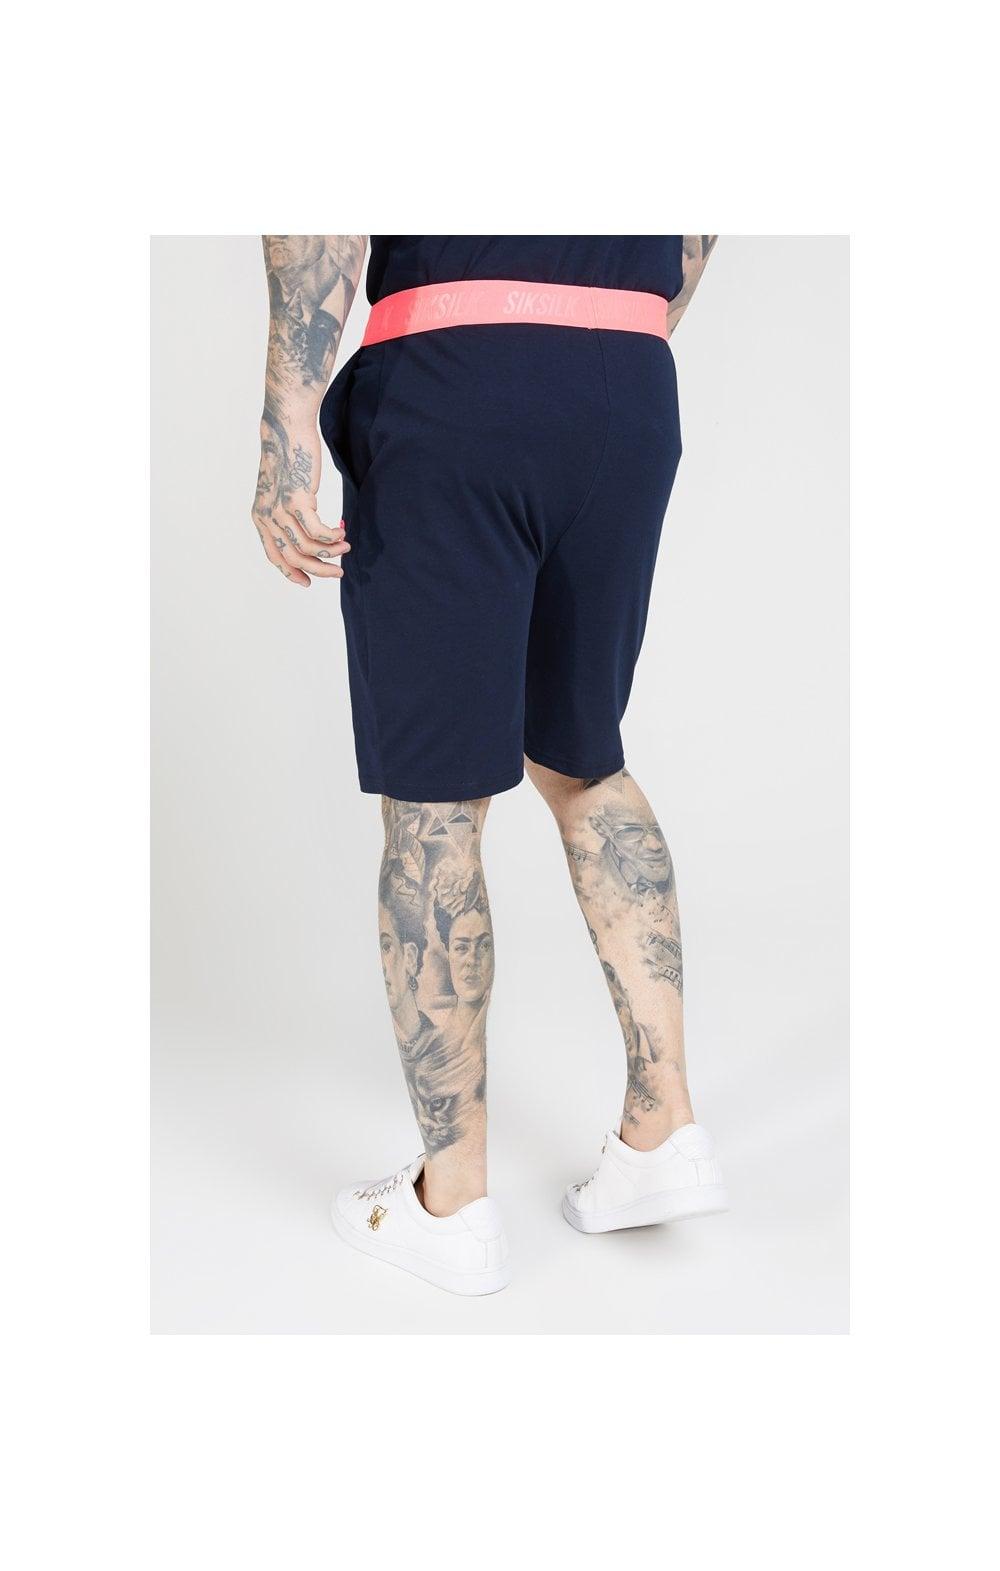 SikSilk Relaxed Fit Shorts –  Navy & Neon Pink (1)